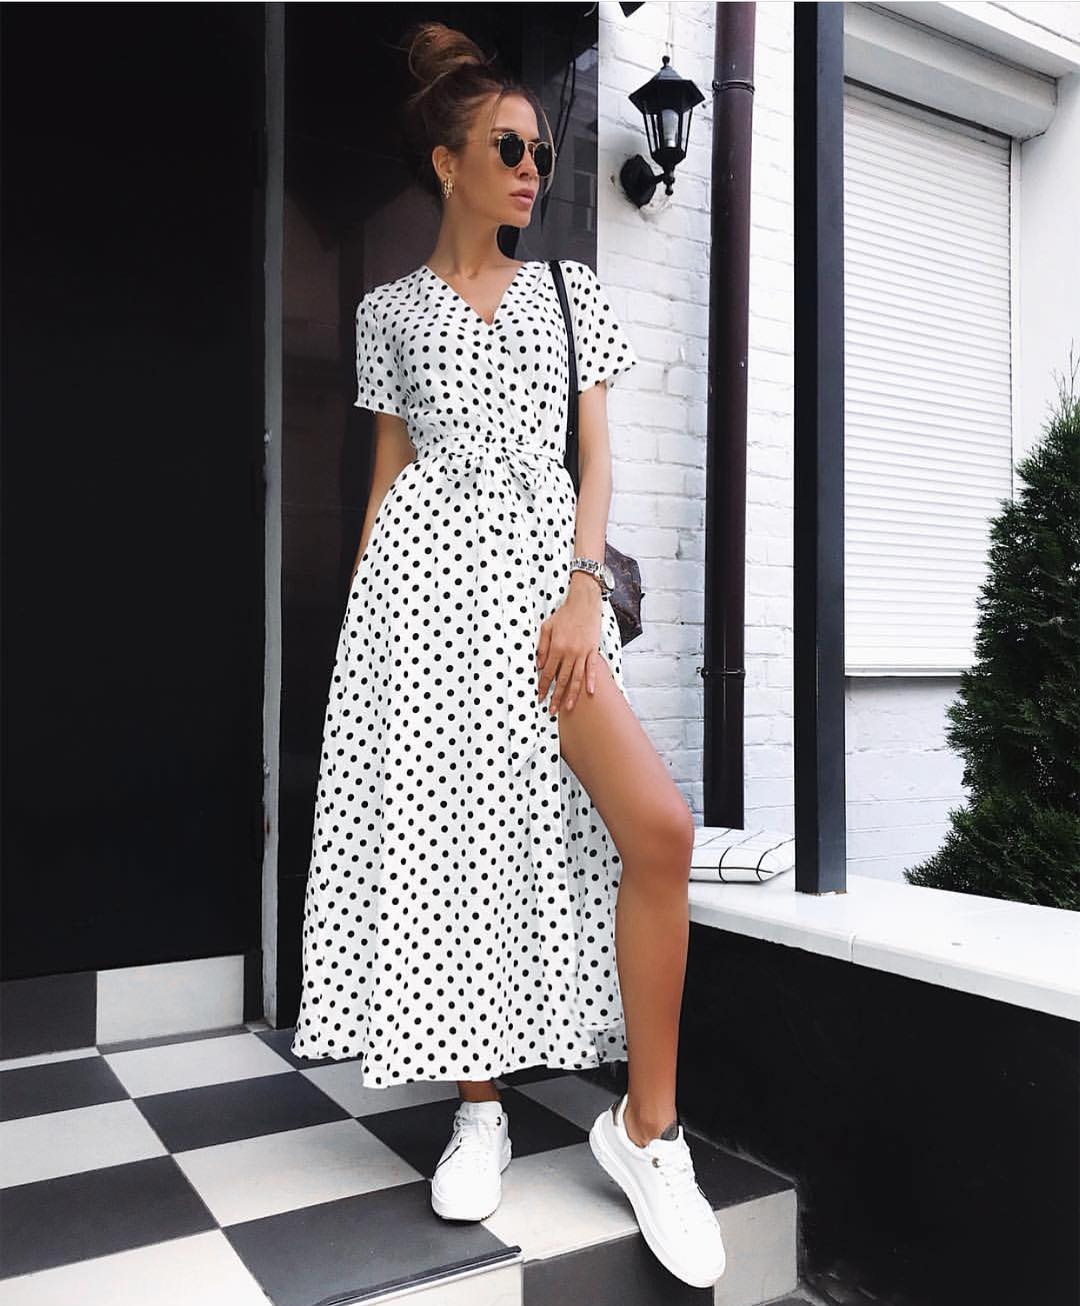 How To Update White Wrap Midi Dress In Black Polka Dots This Summer 2020